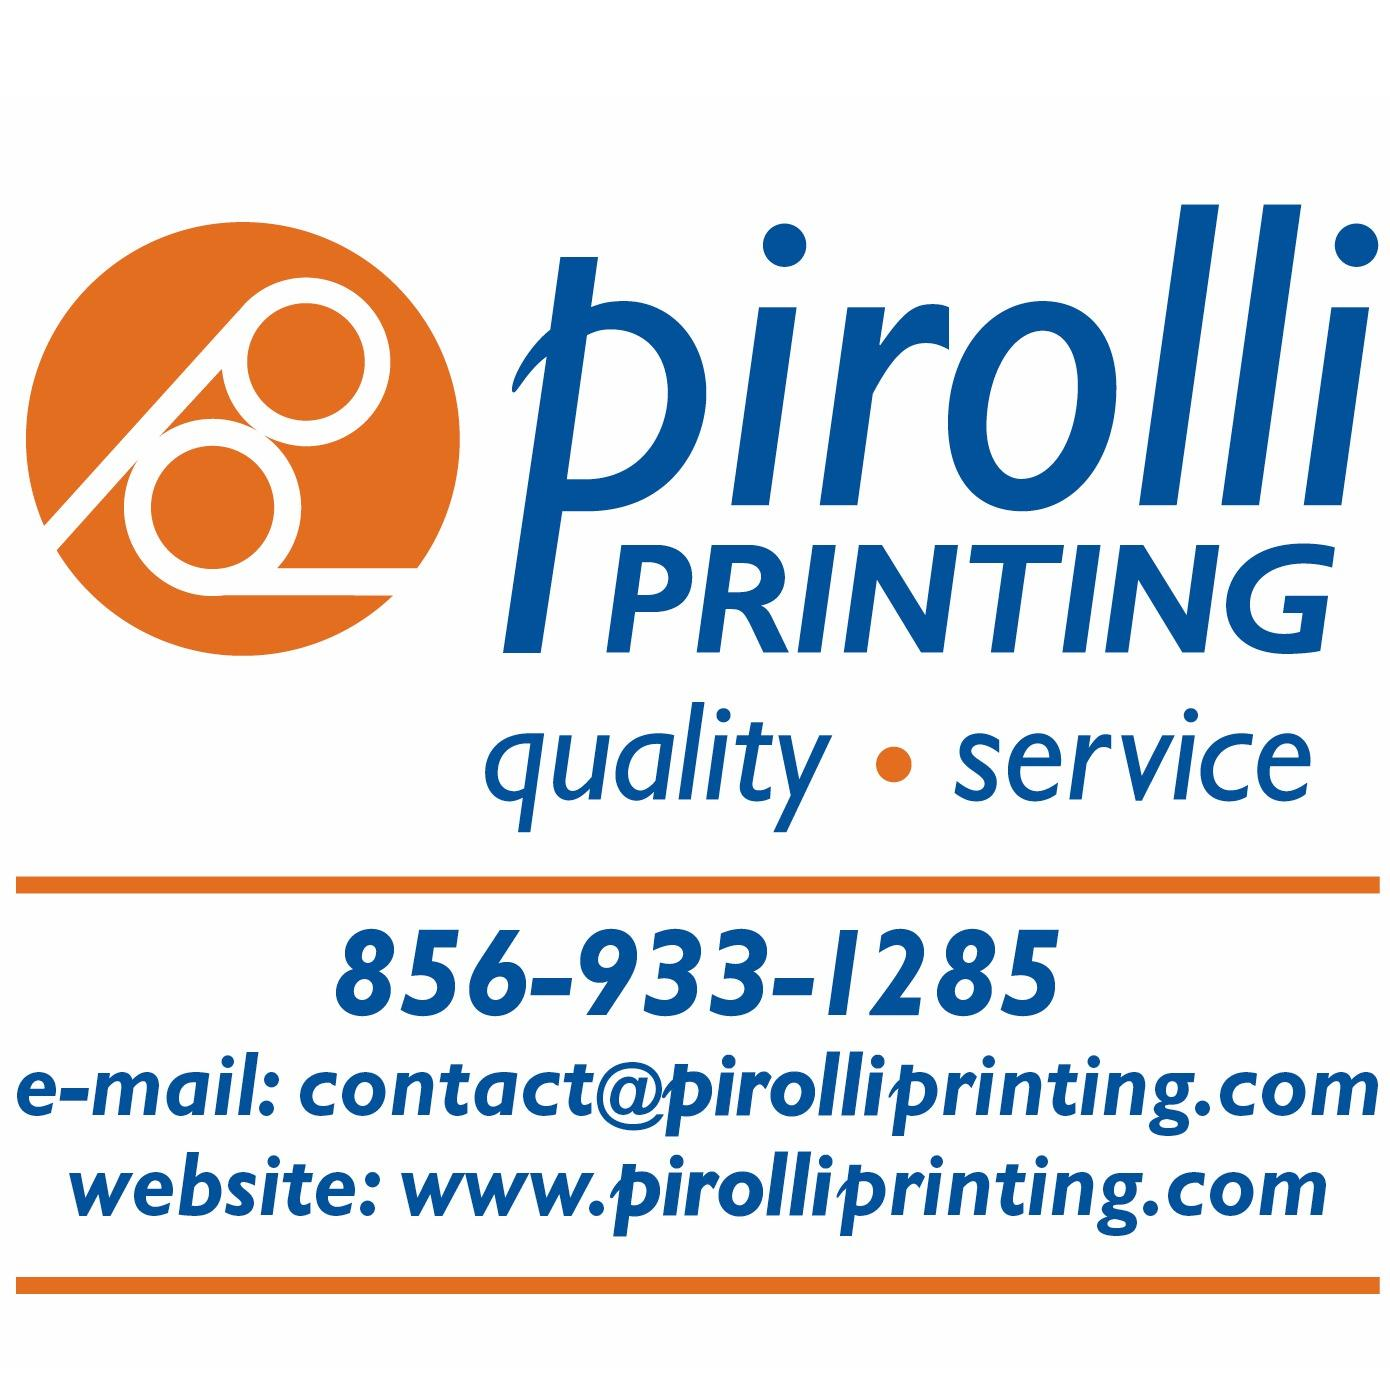 Pirolli Printing Co - Bellmawr, NJ - Computer & Electronic Stores